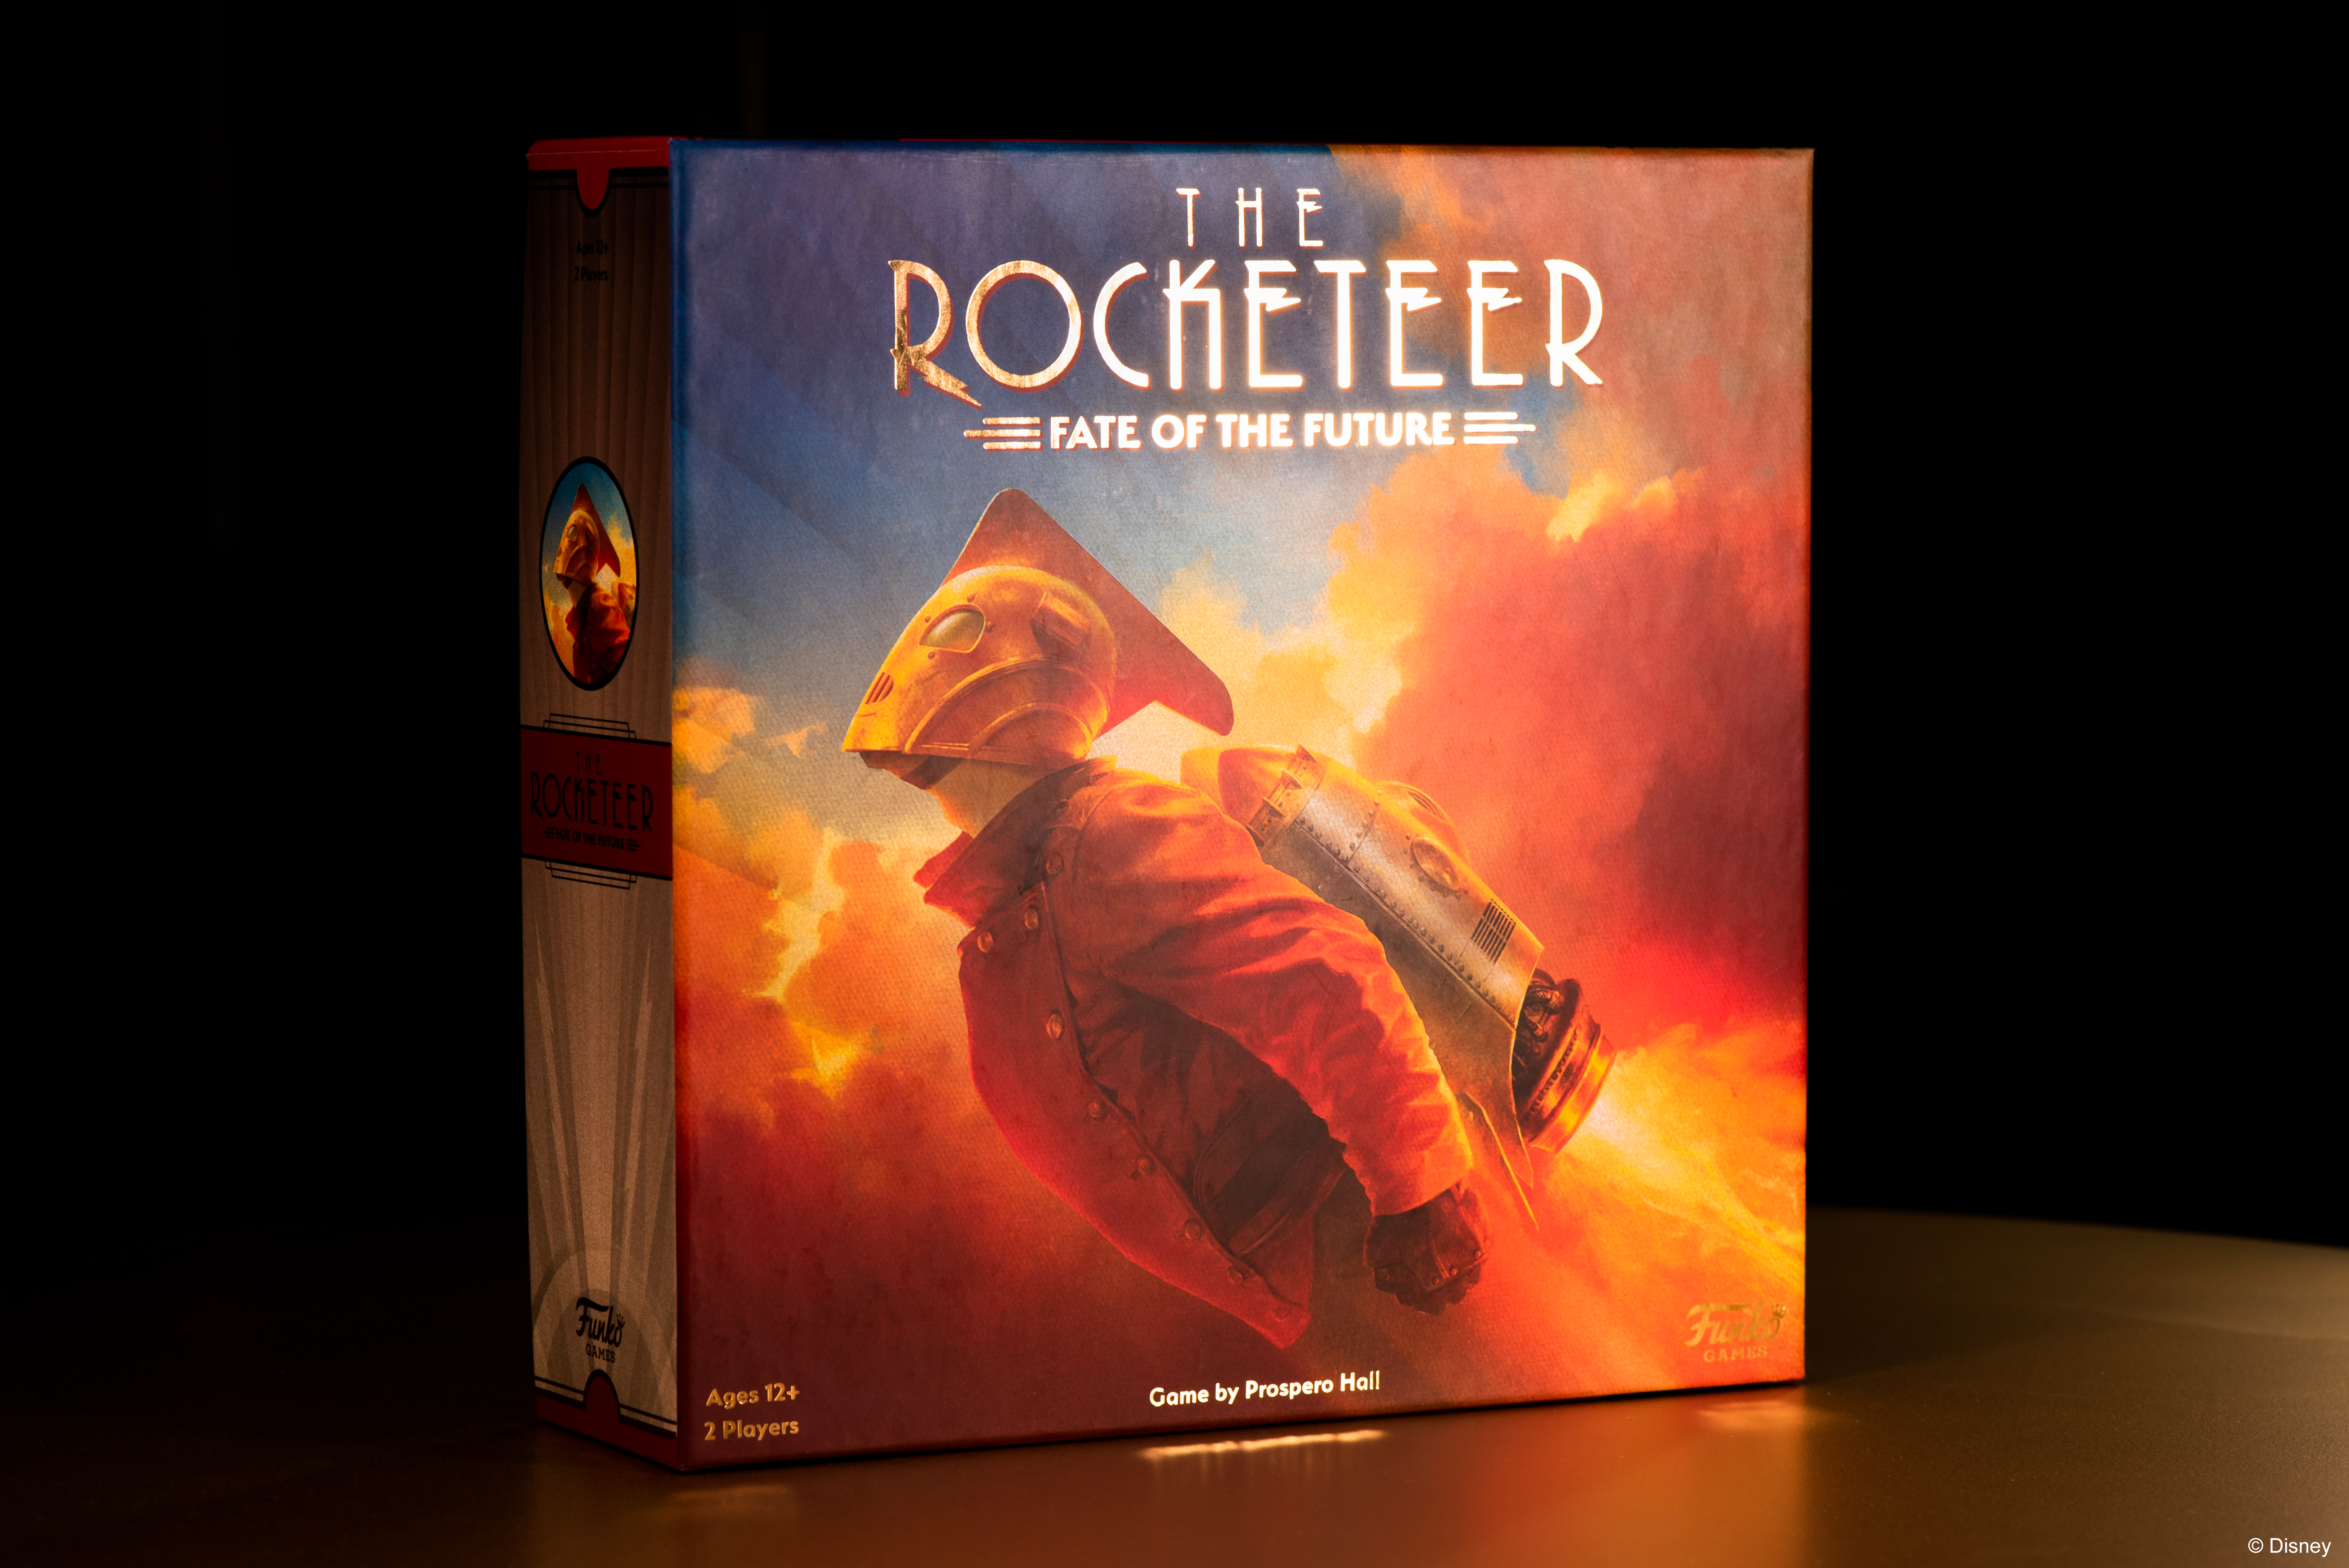 Cover art for The Rocketeer: Fate of the Future is gilded, and uses art from the movie poster.